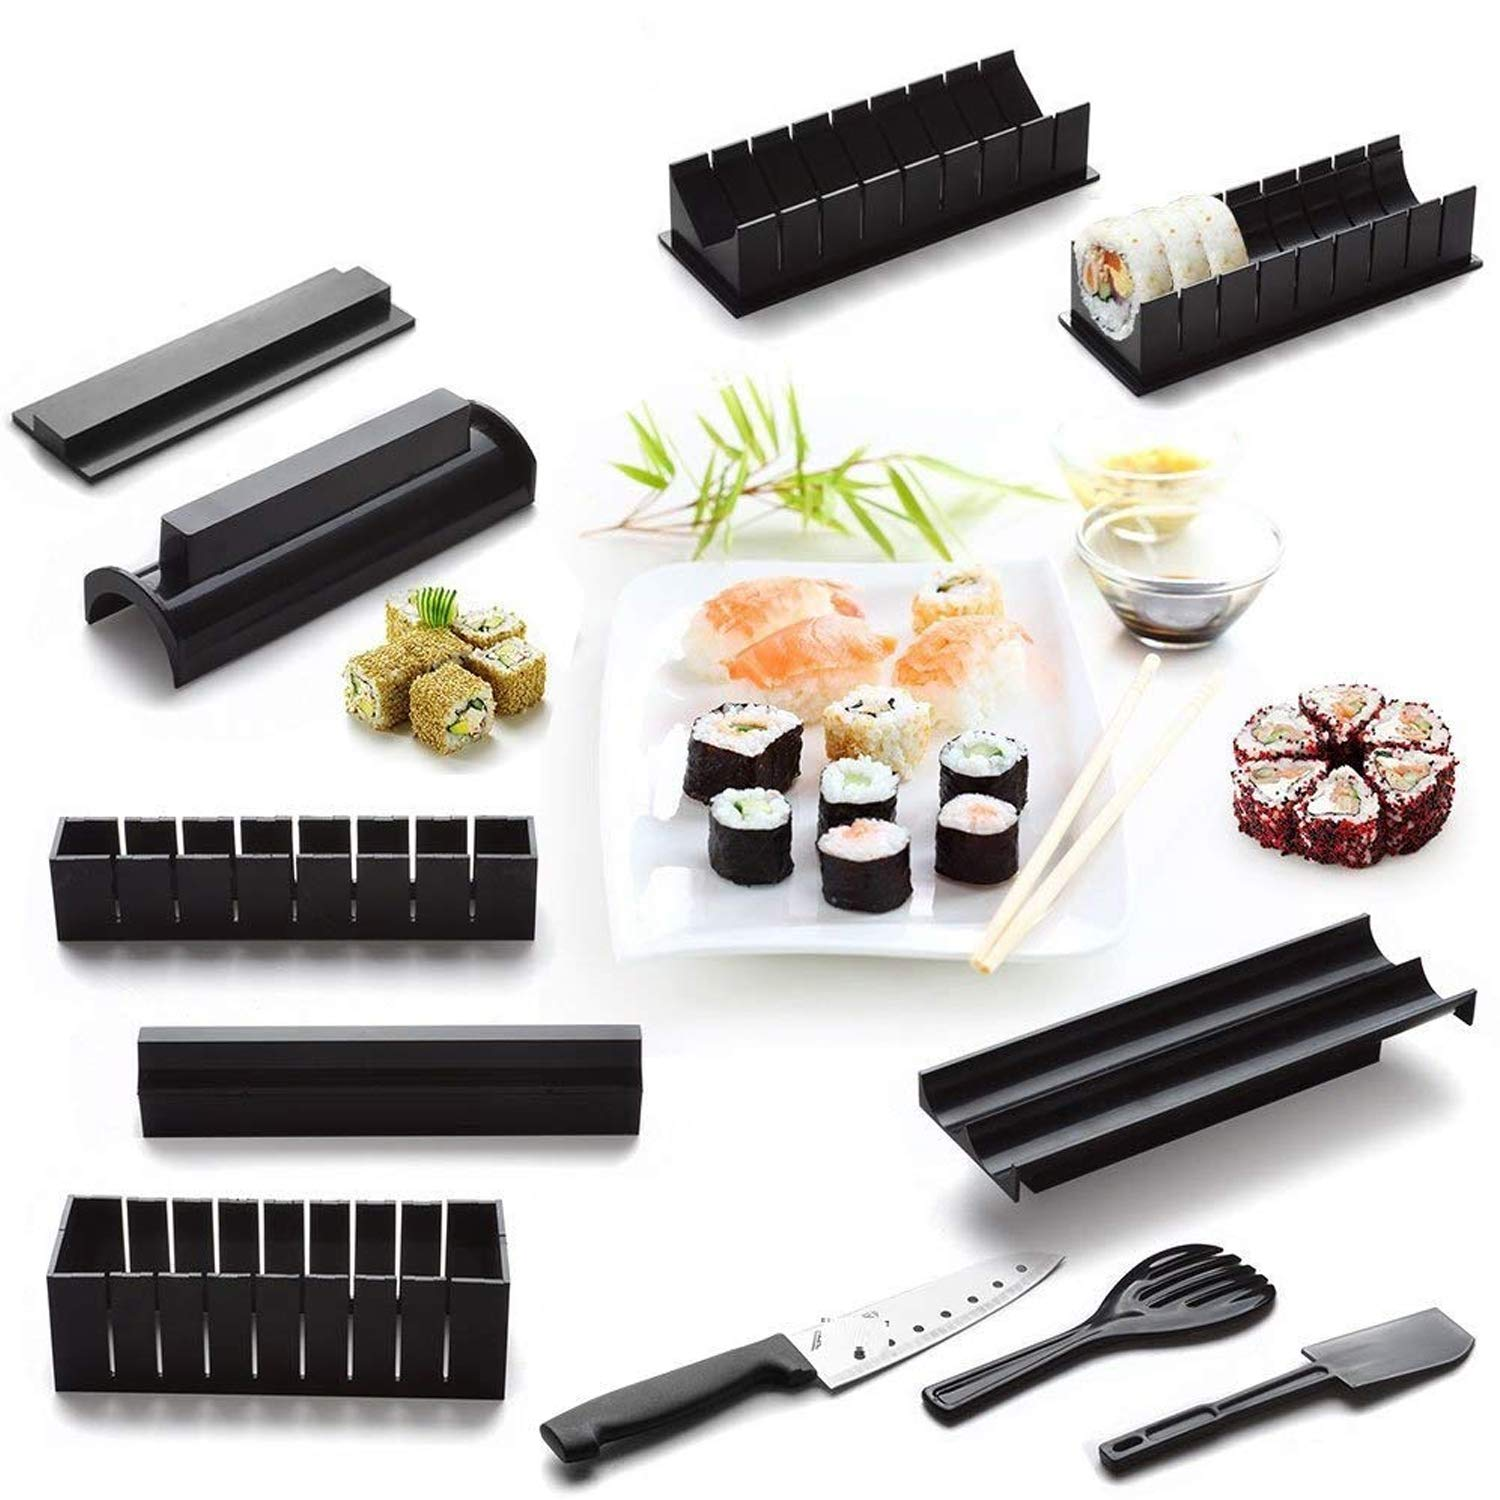 Sushi Making Kit - Original Sushi Maker Deluxe Exclusive Online Video Tutorials Complete with Sushi Knife 11 Piece DIY Sushi Set - Easy and Fun - Sushi Rolls - Maki Rolls by ELEDUCTMON